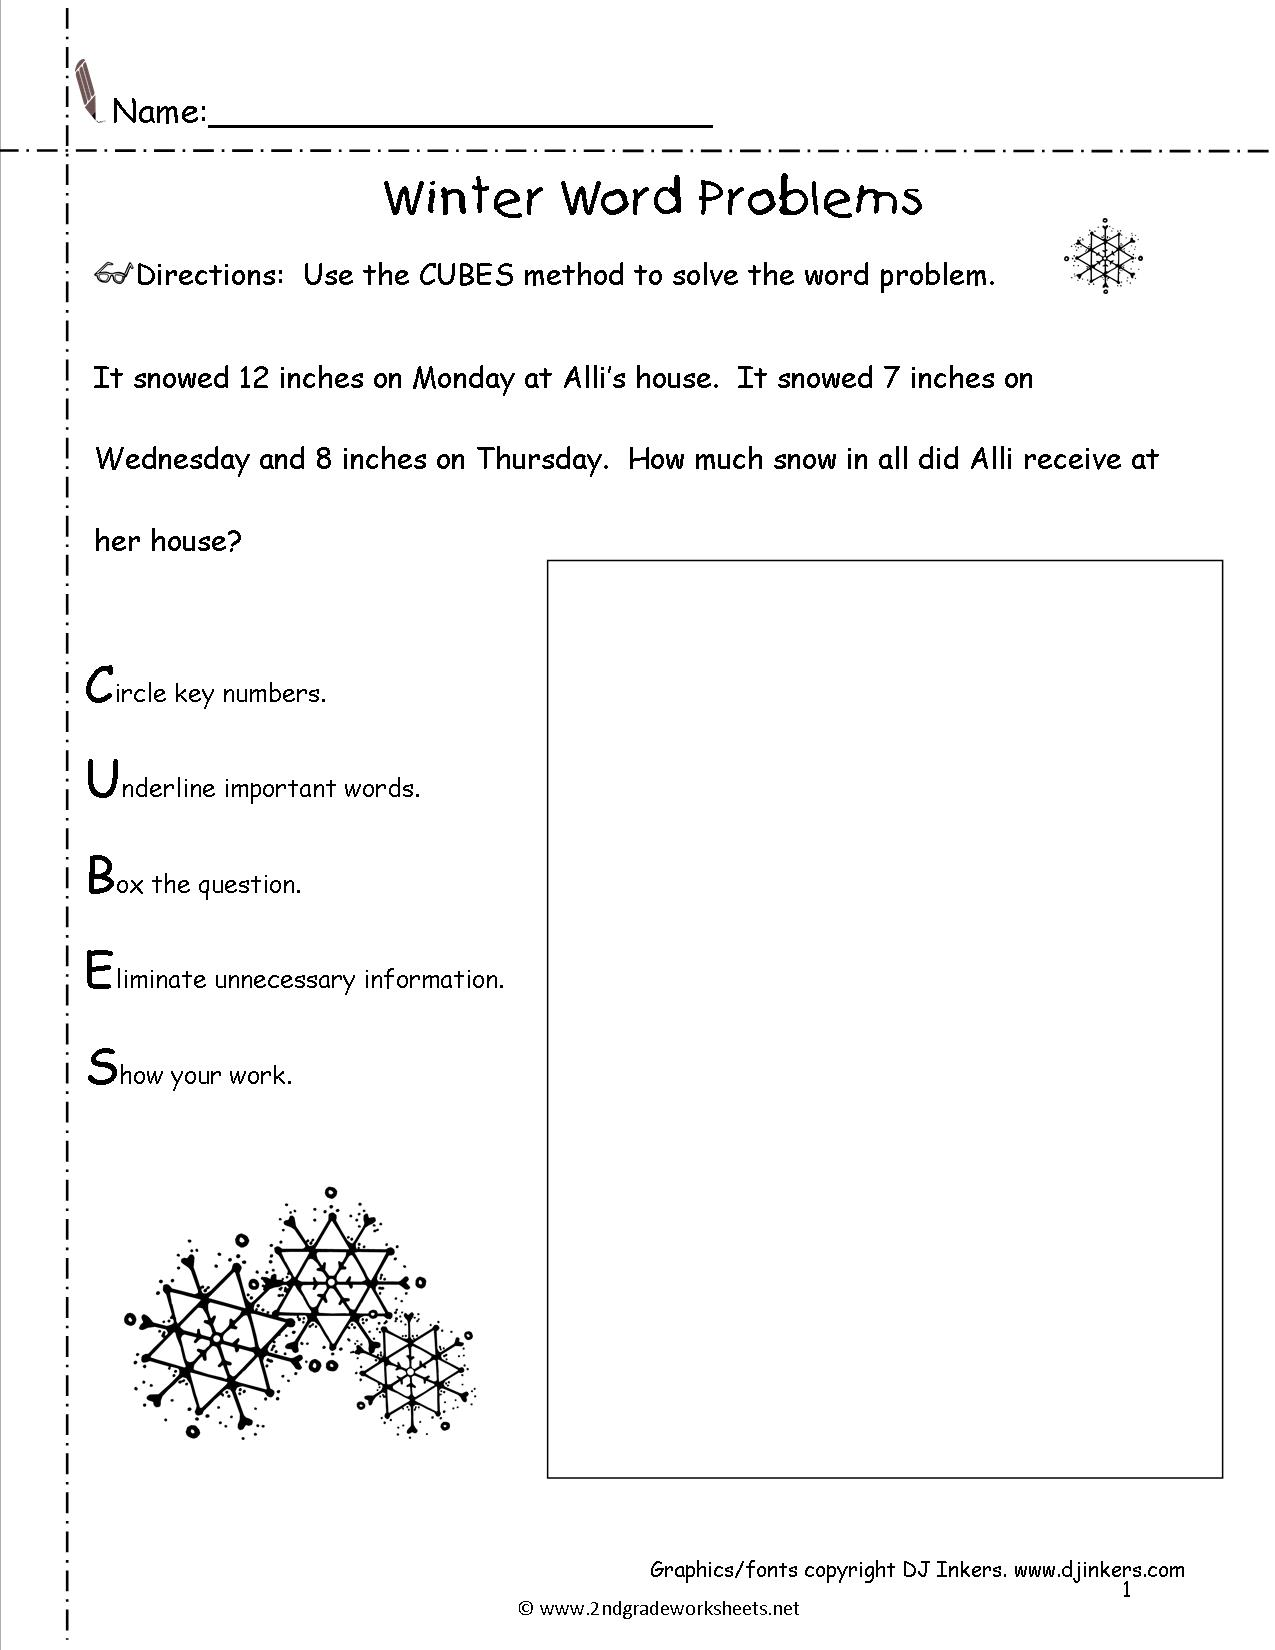 Winter Worksheet For Middle School